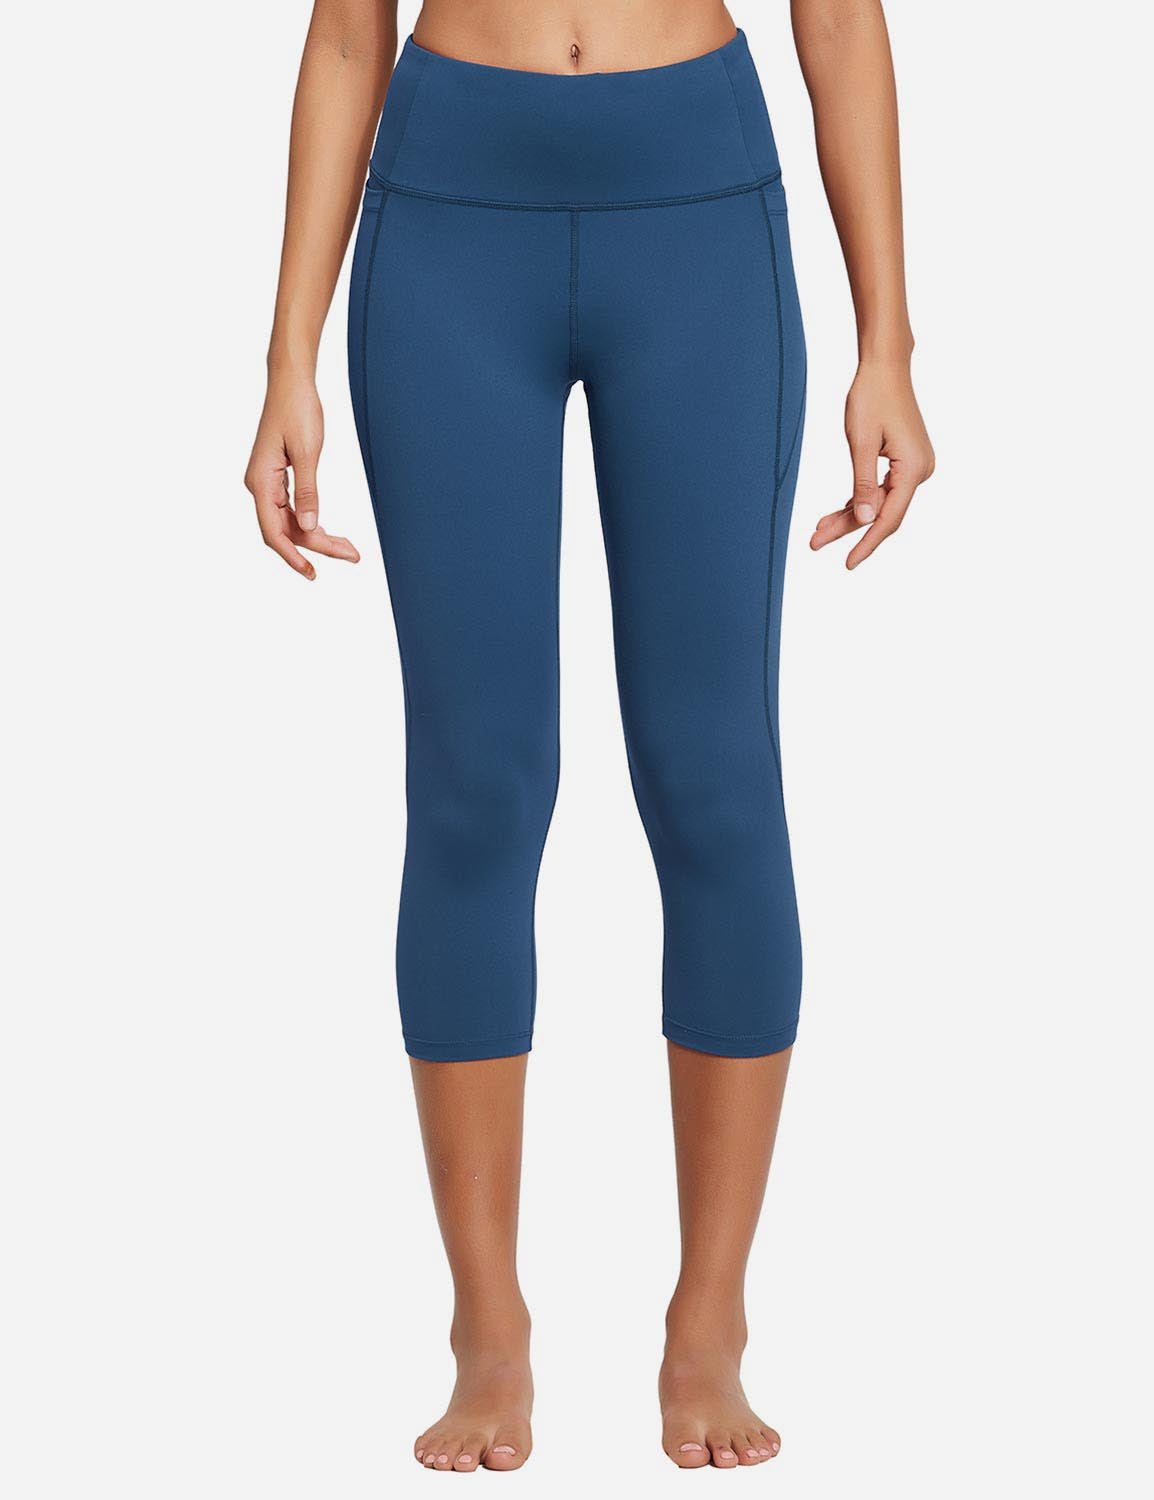 Baleaf Womens High Rise Bottom Contour Pocketed Capris Denim Blue Front